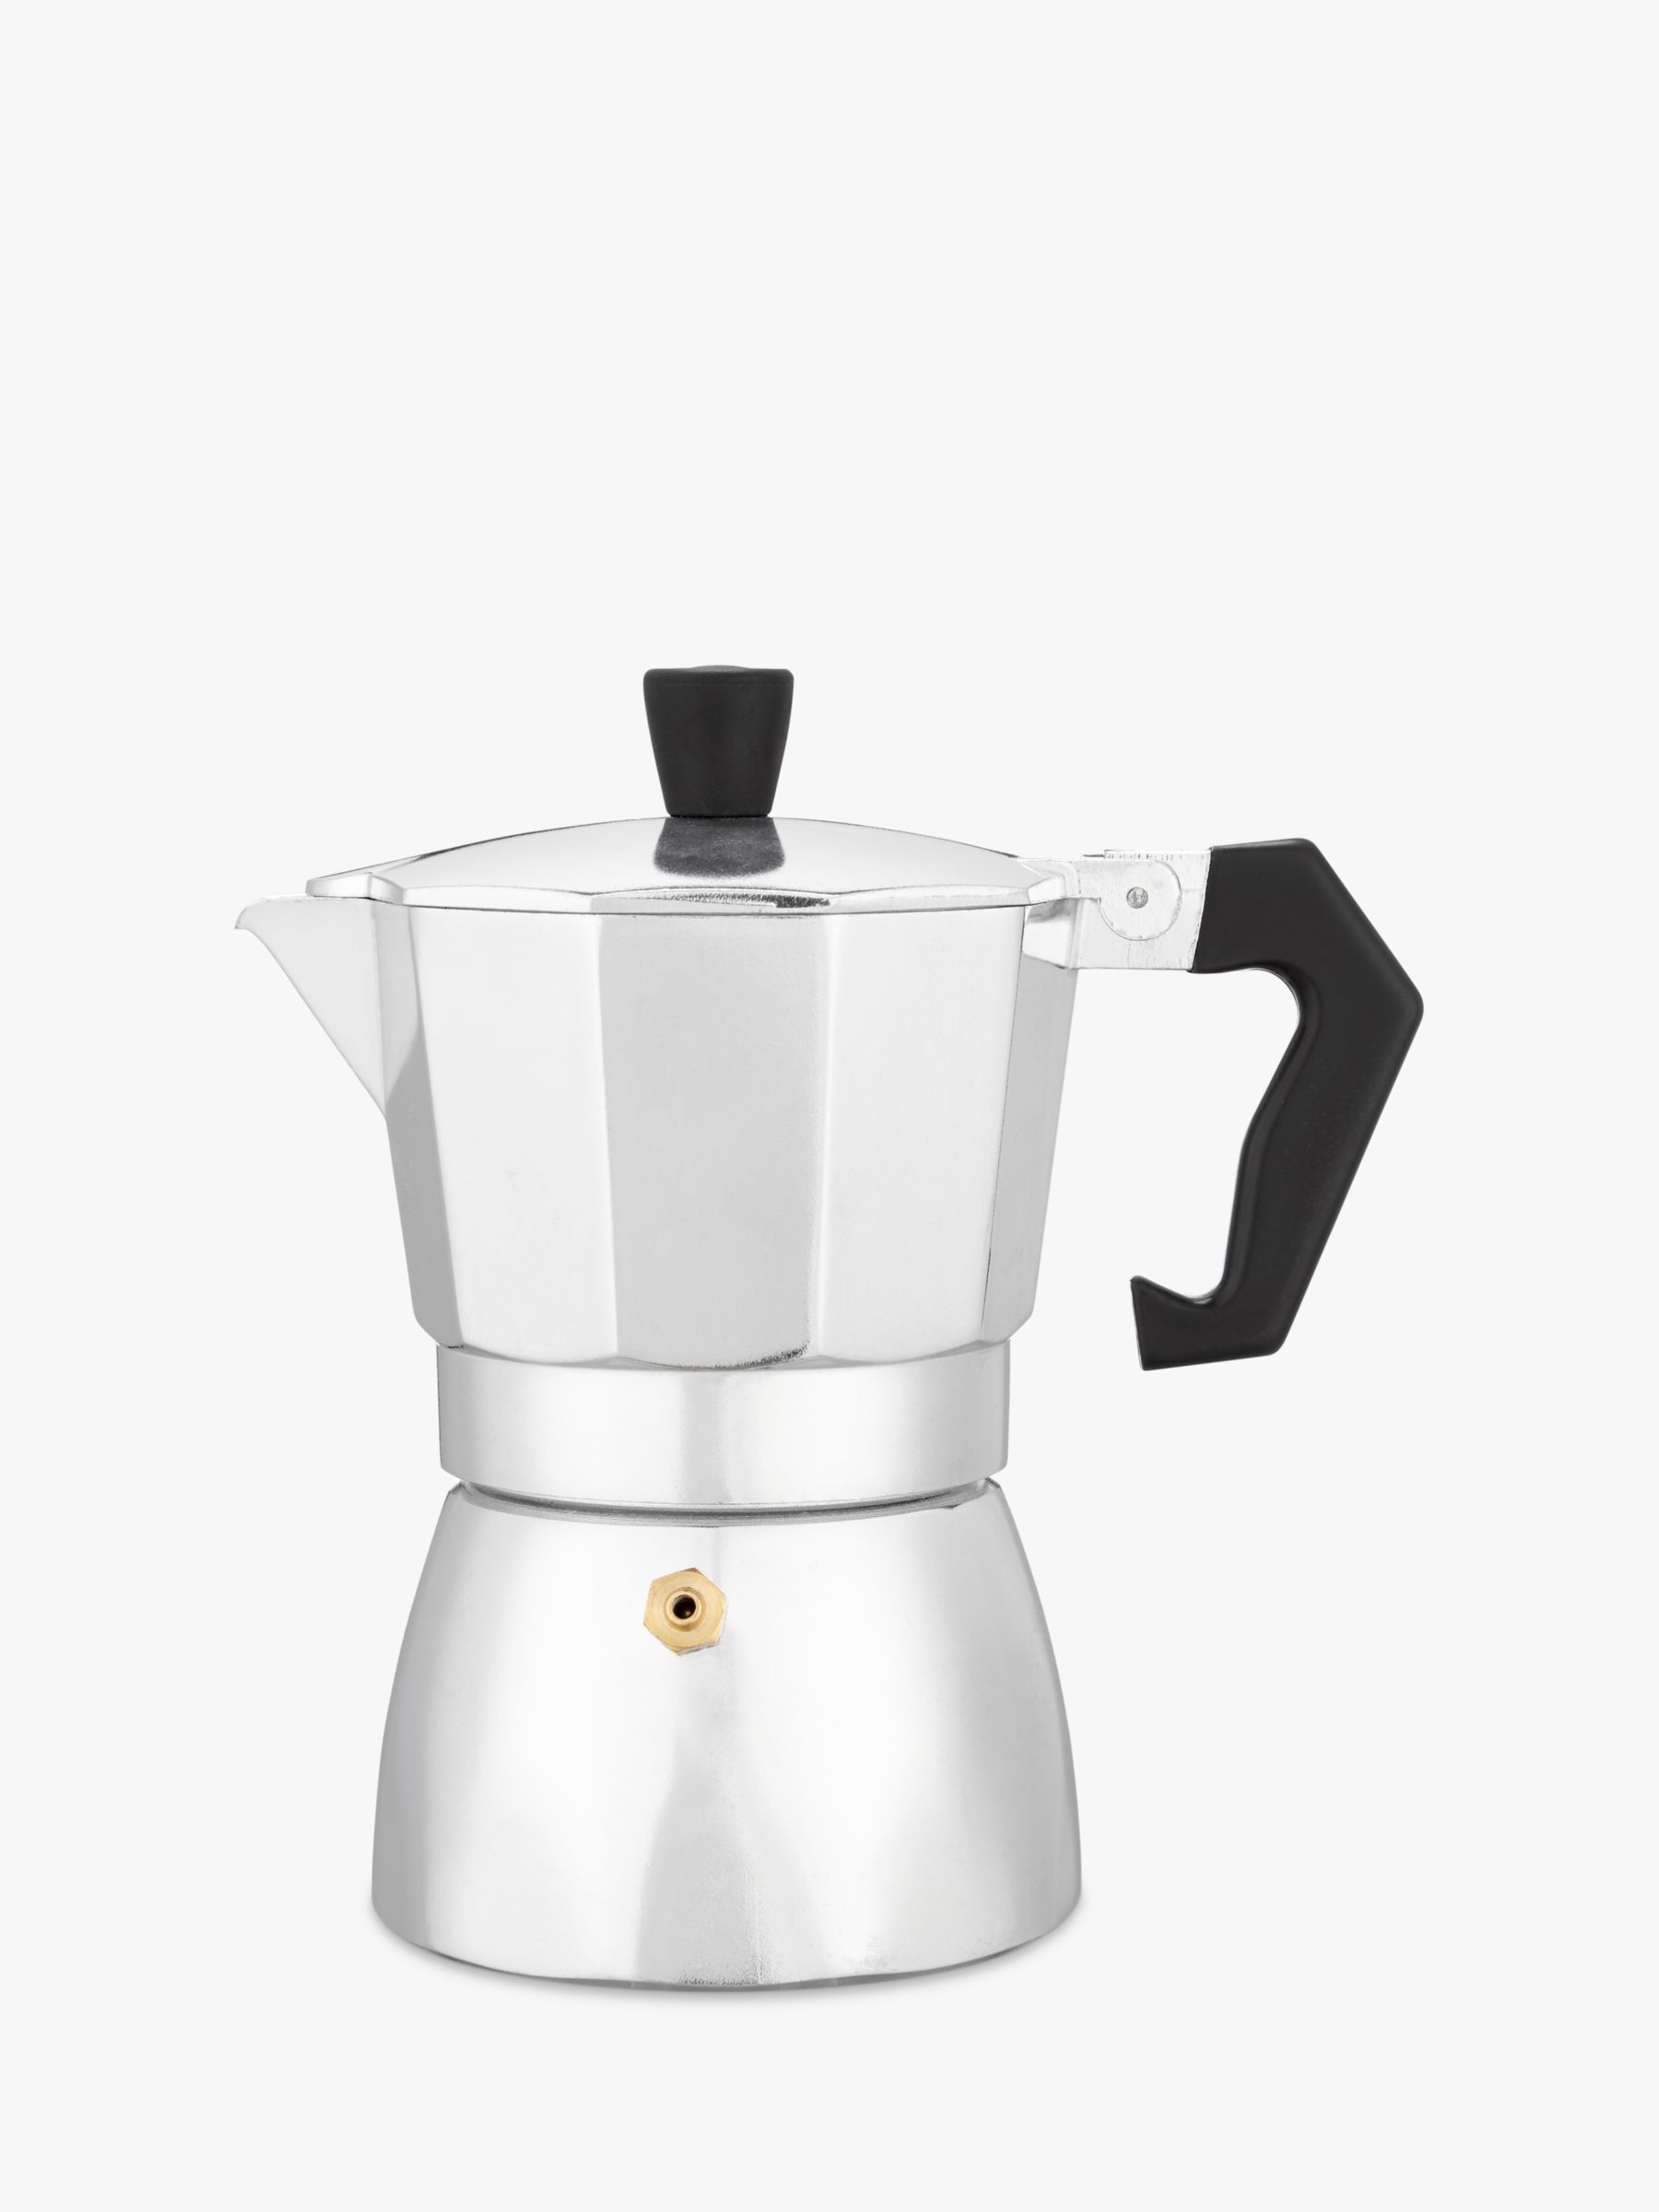 Italian Coffee Maker John Lewis : Buy cheap Espresso maker 3 - compare Coffee Makers prices for best UK deals